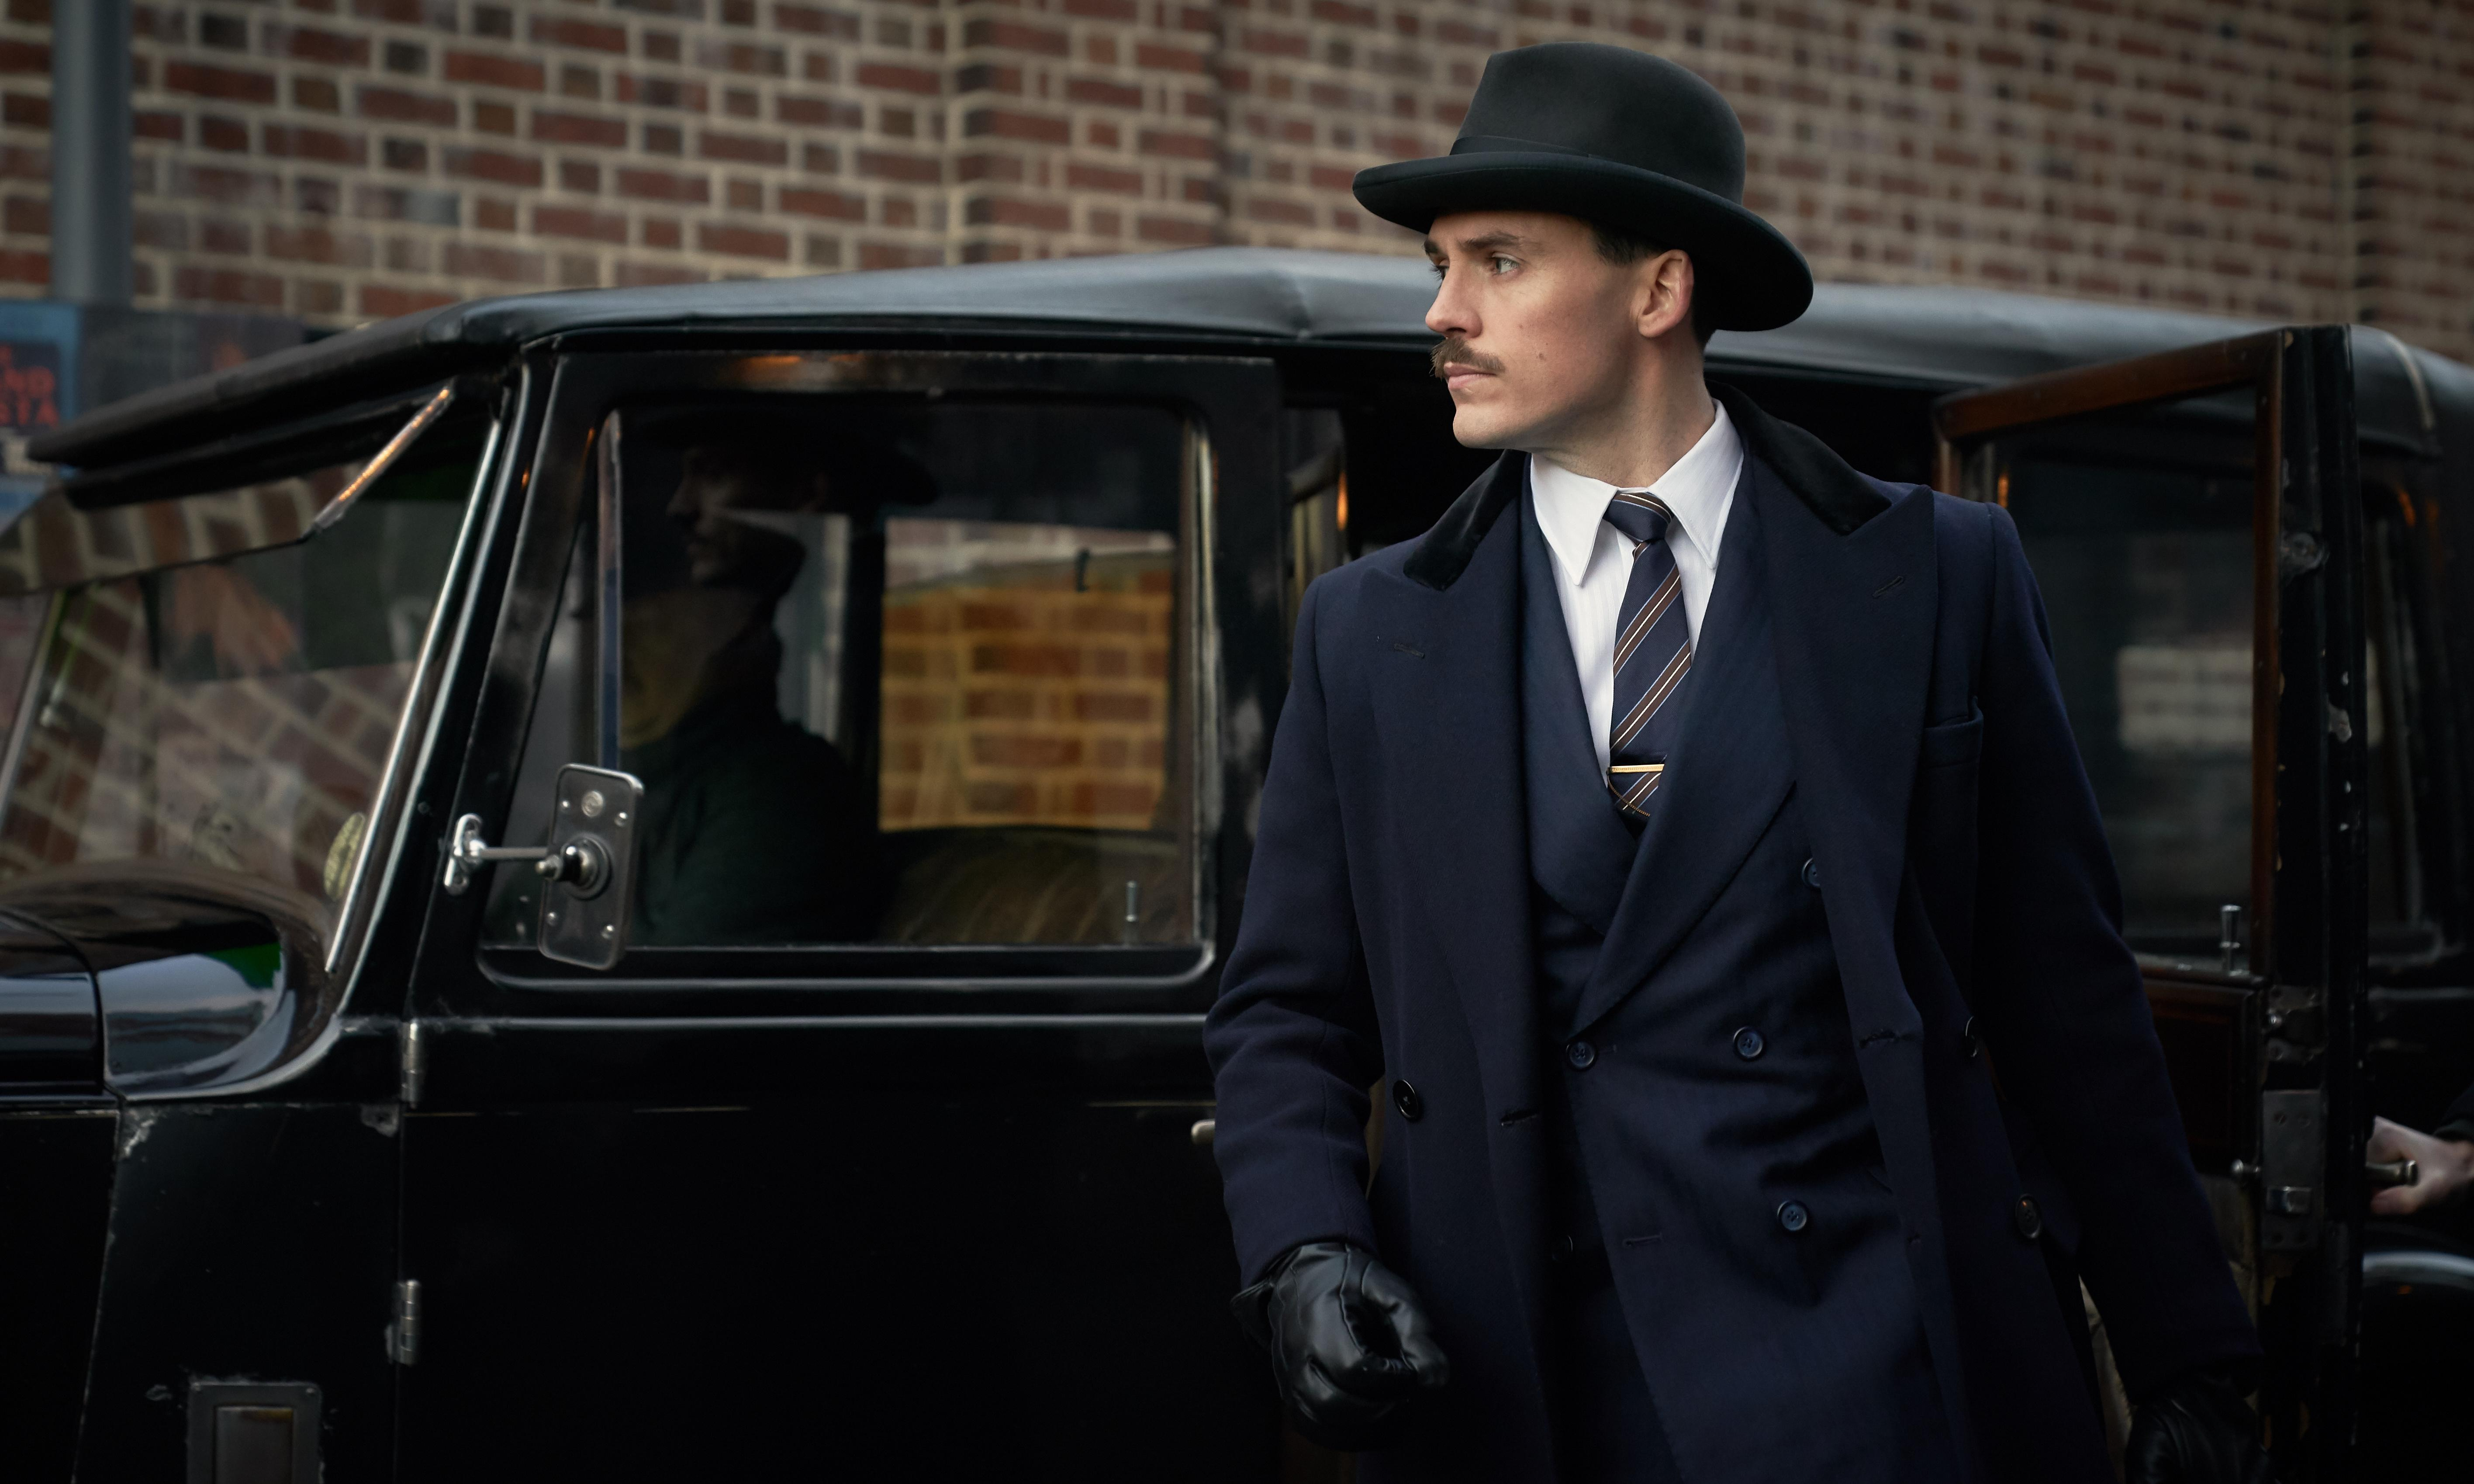 This charming monster: how Peaky Blinders took on Mosley